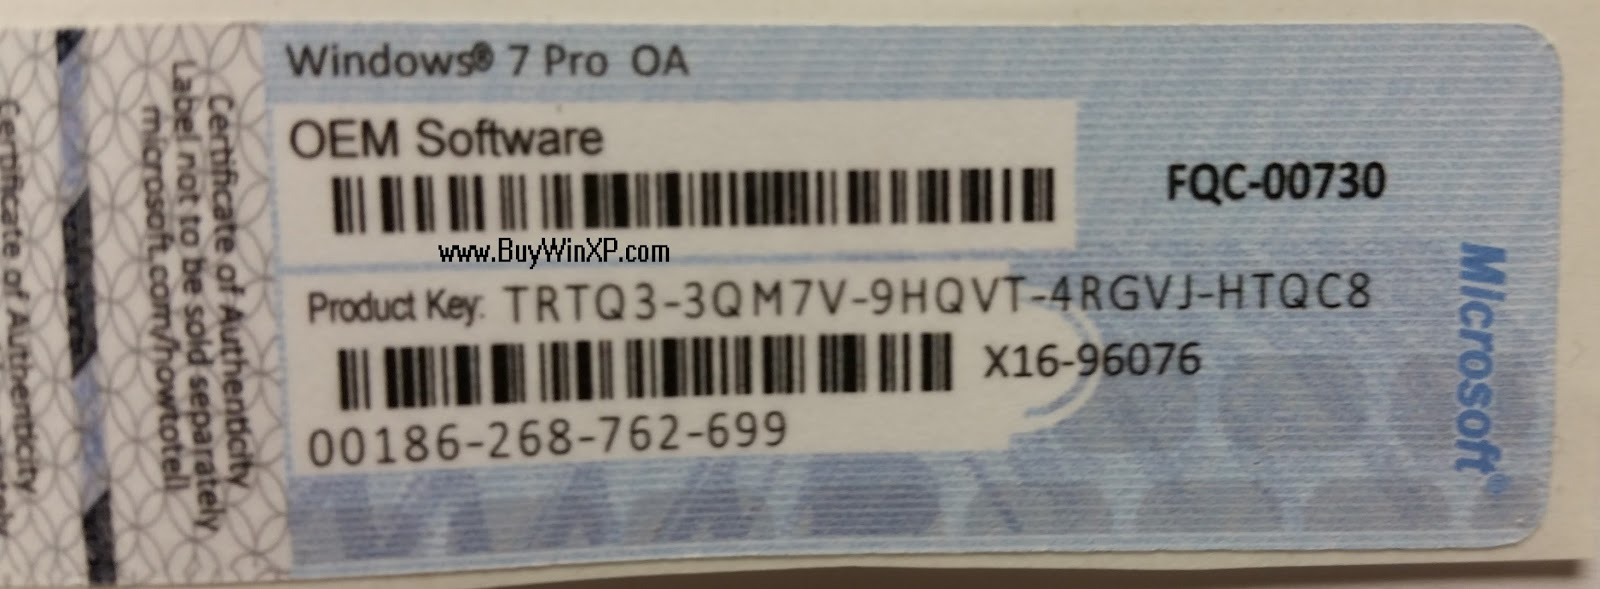 buy a windows 7 professional product key